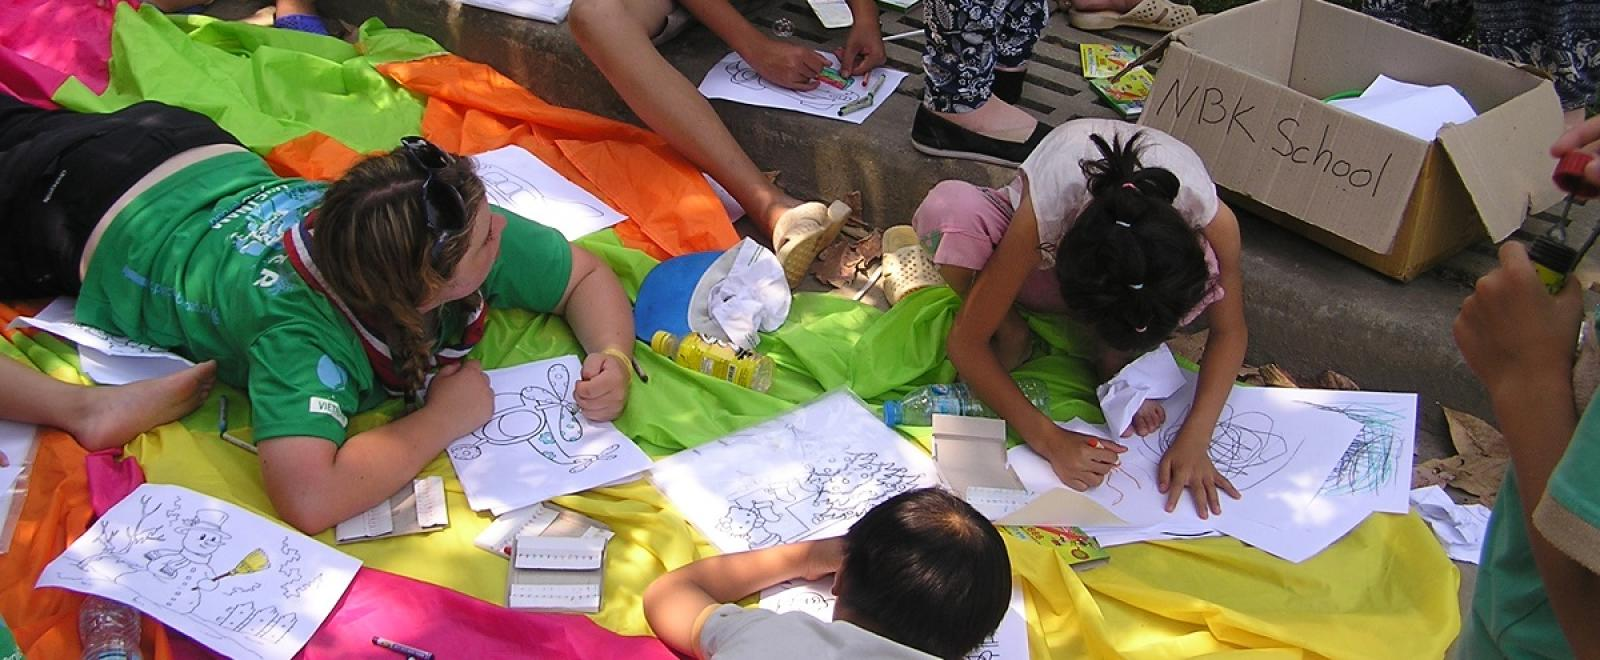 Projects Abroad volunteers work on homework and drawing activities with children in Vietnam on the Childcare Project